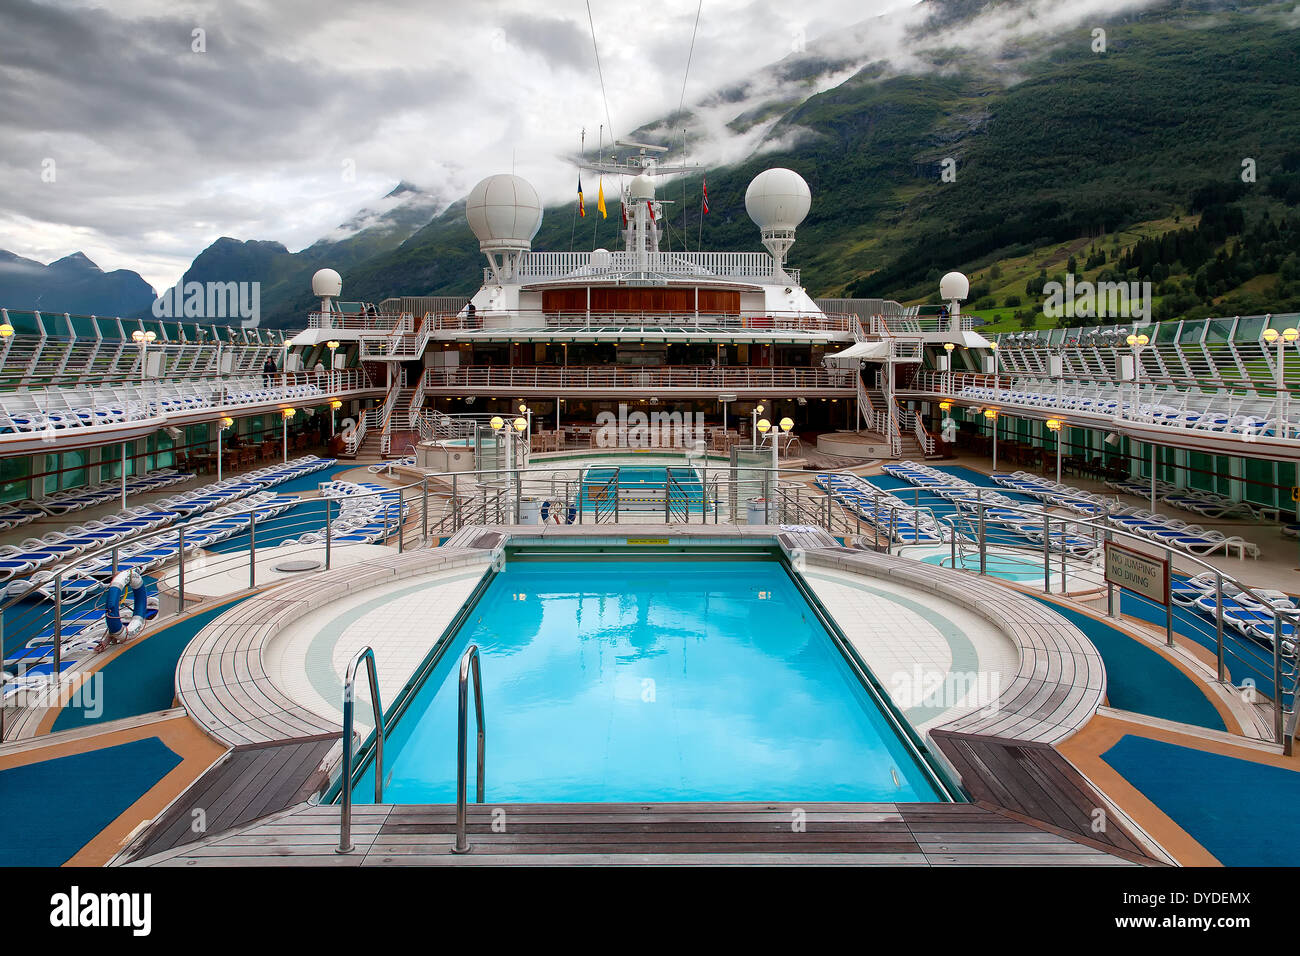 Cruise Ship Swimming Pool And Mountains Stock Photo Royalty Free Image 6852